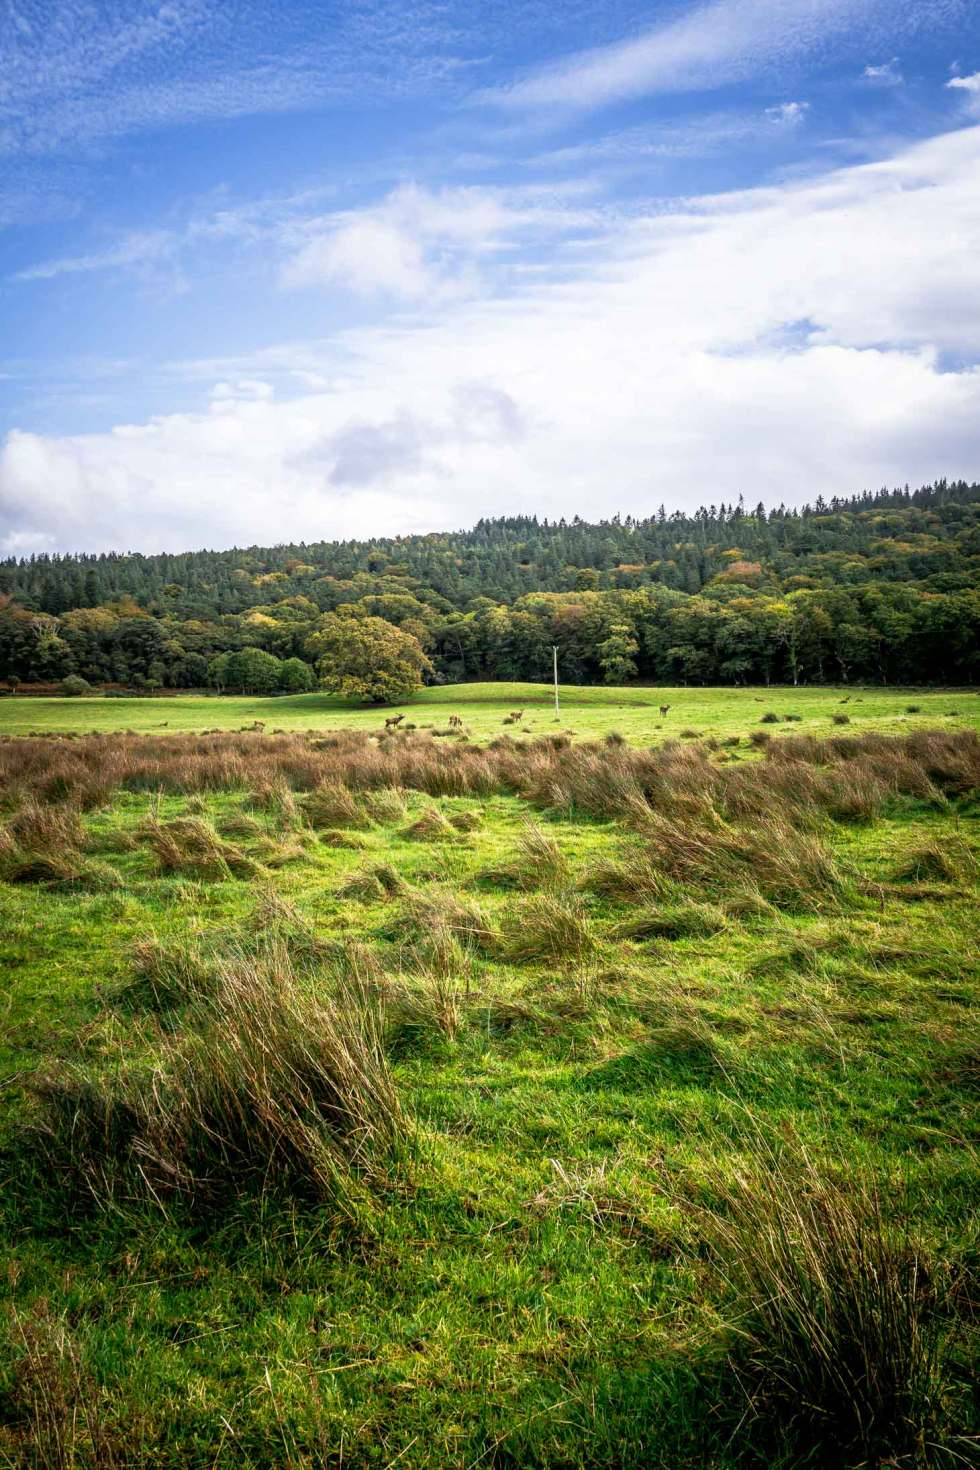 Killarney National Park in the fall with red deer in the fields.